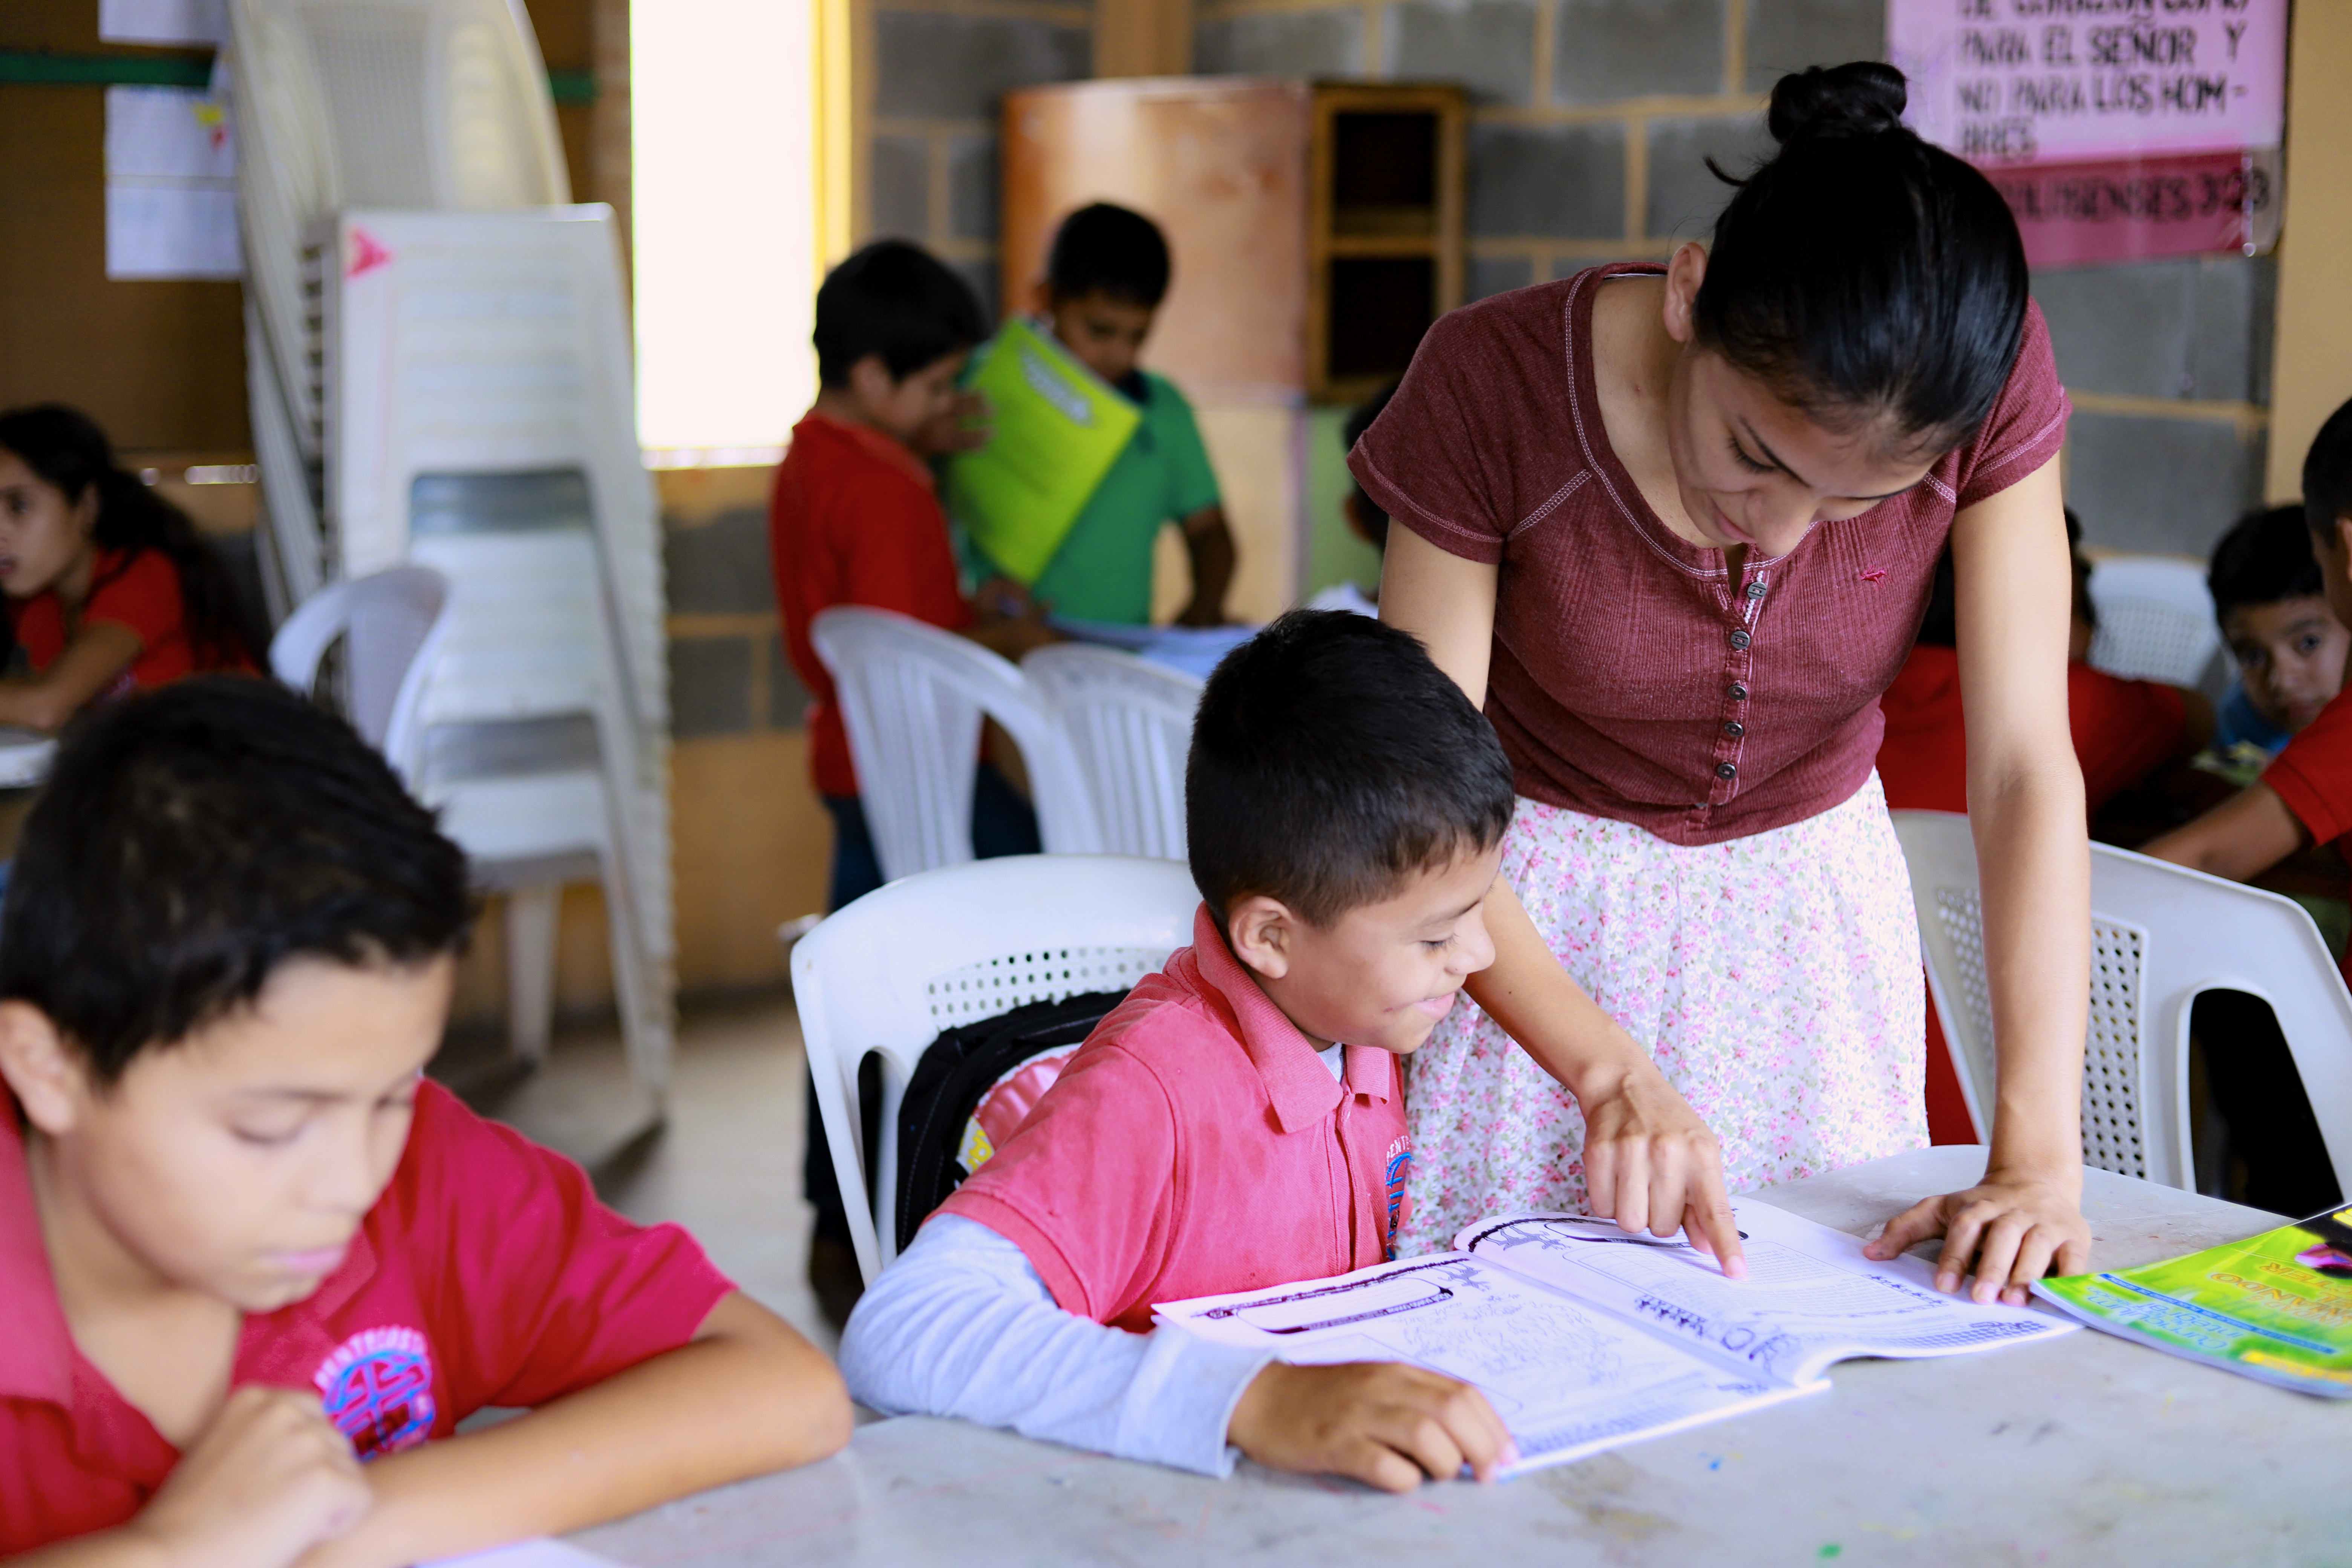 A tutor, Debora, helps a young boy, her student, with a letter he is composing in his notebook.